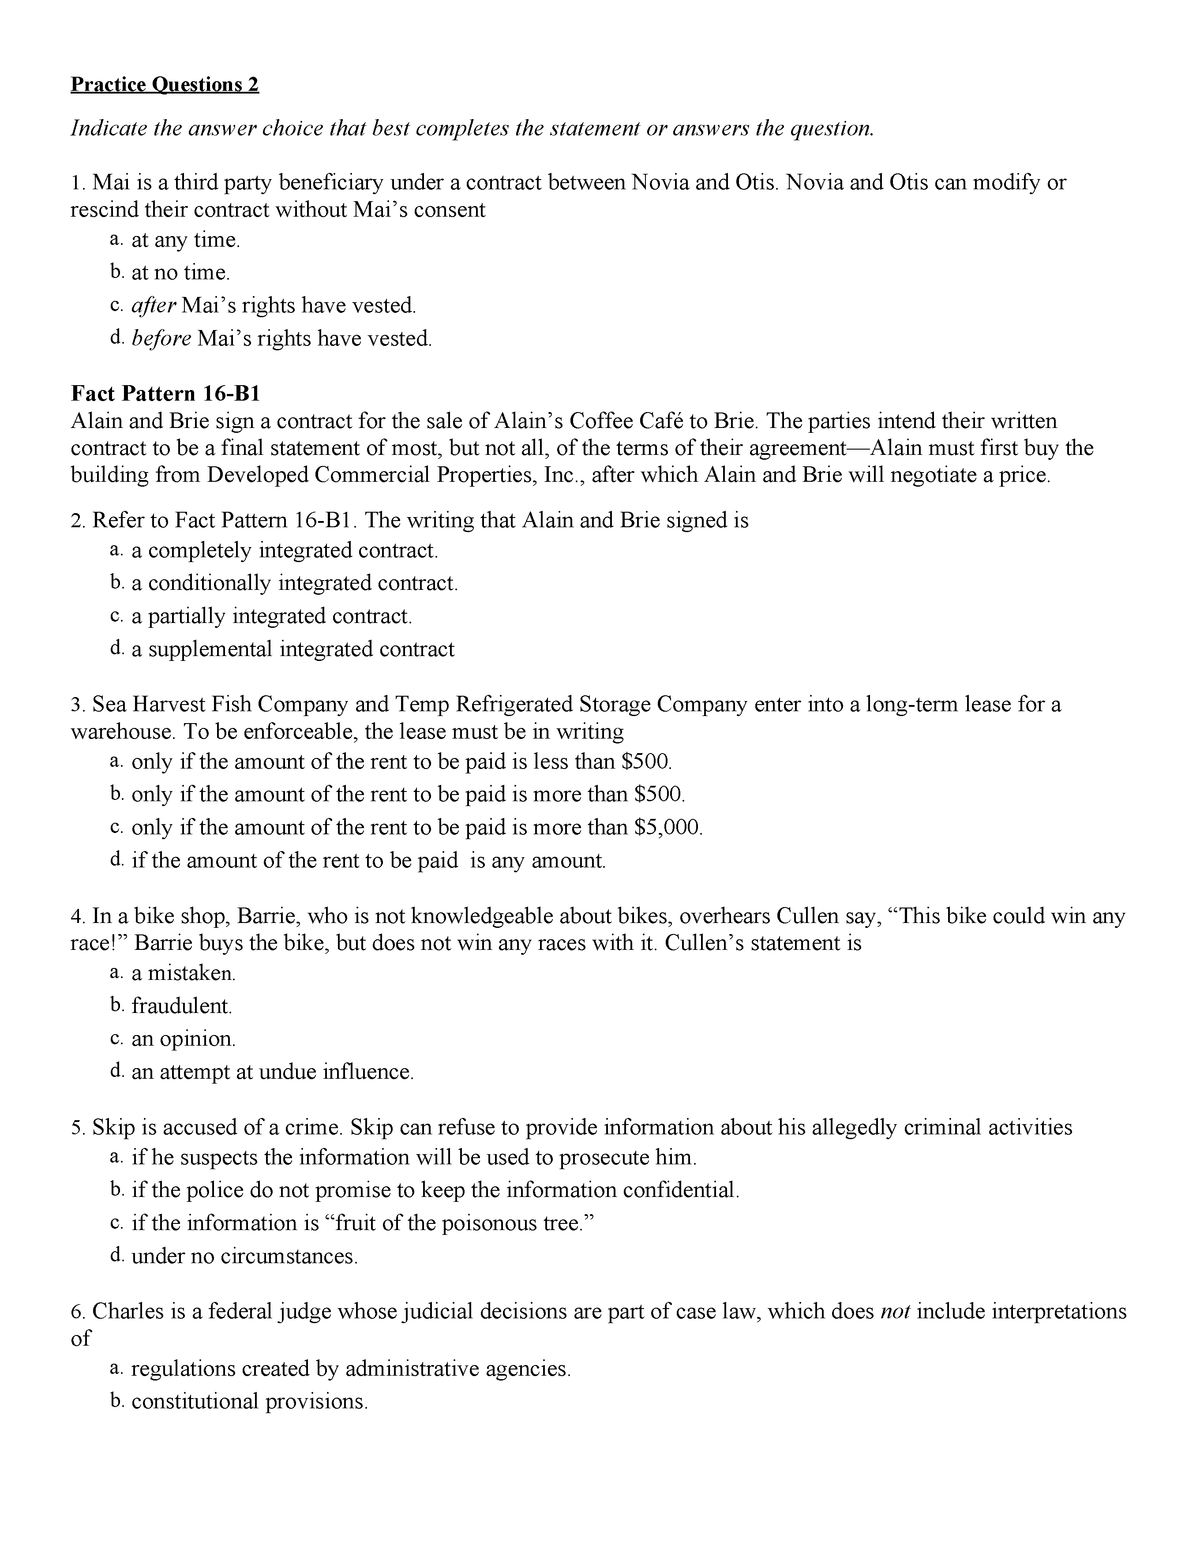 Sample/practice exam 2017, questions and answers - BUS 110